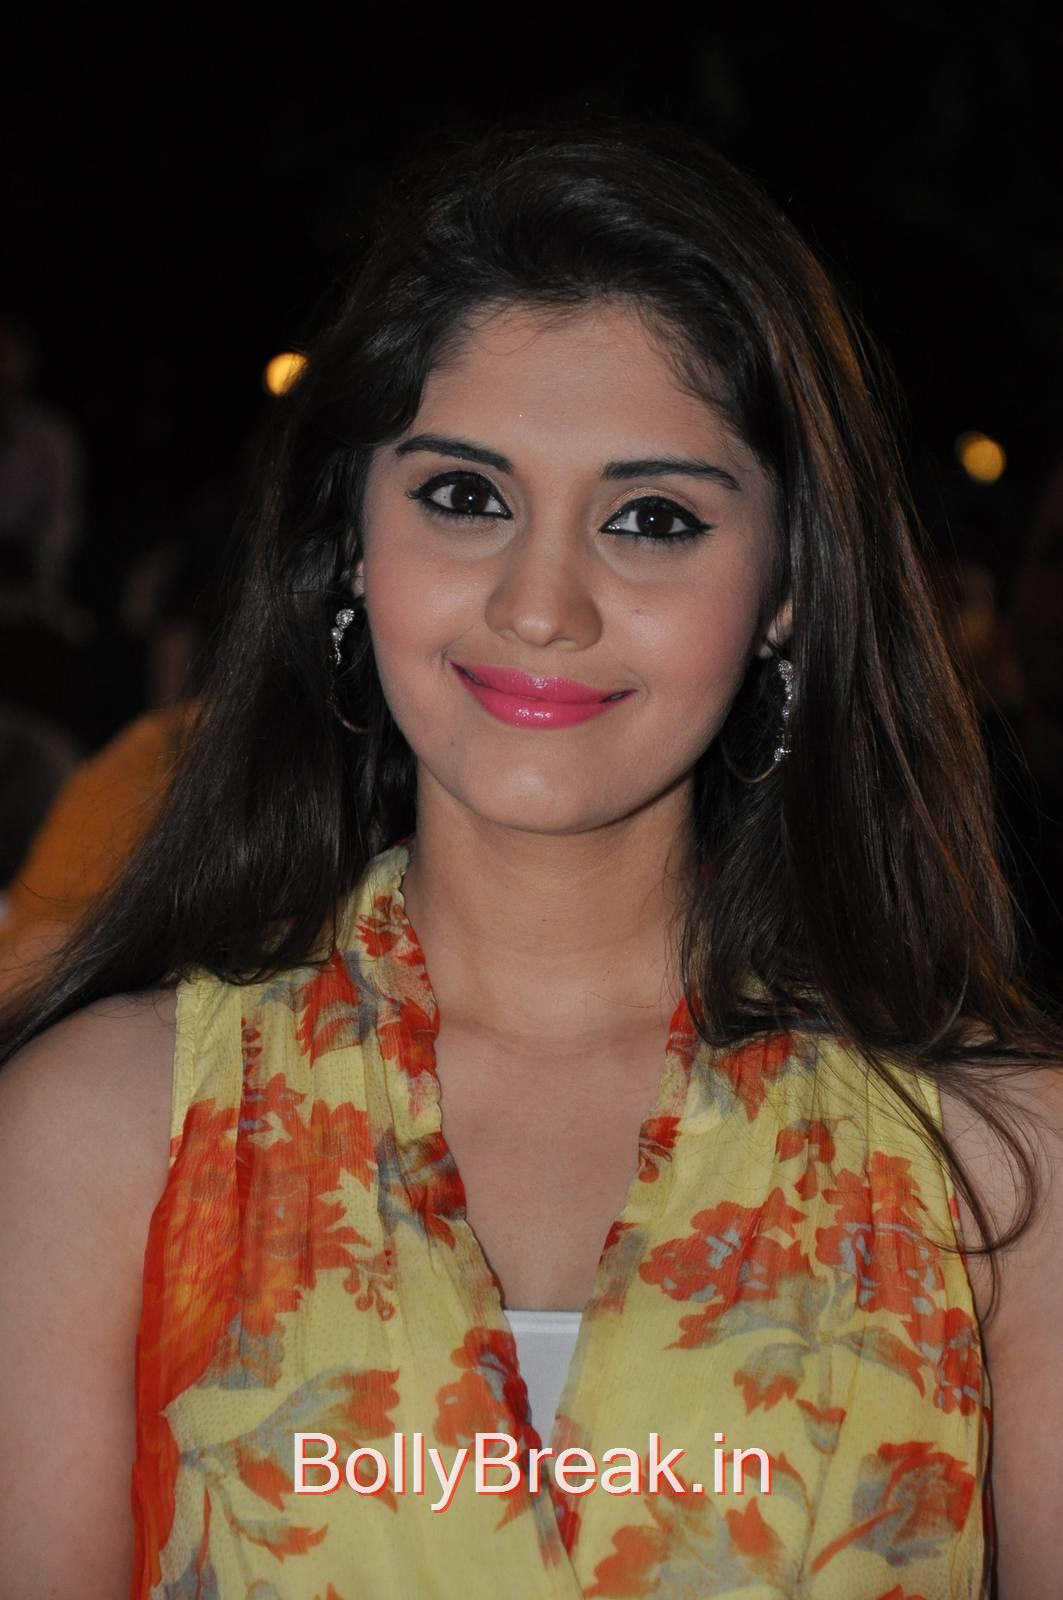 Surabhi Photo Gallery, Actress Surabhi Hot Photo gallery from an event